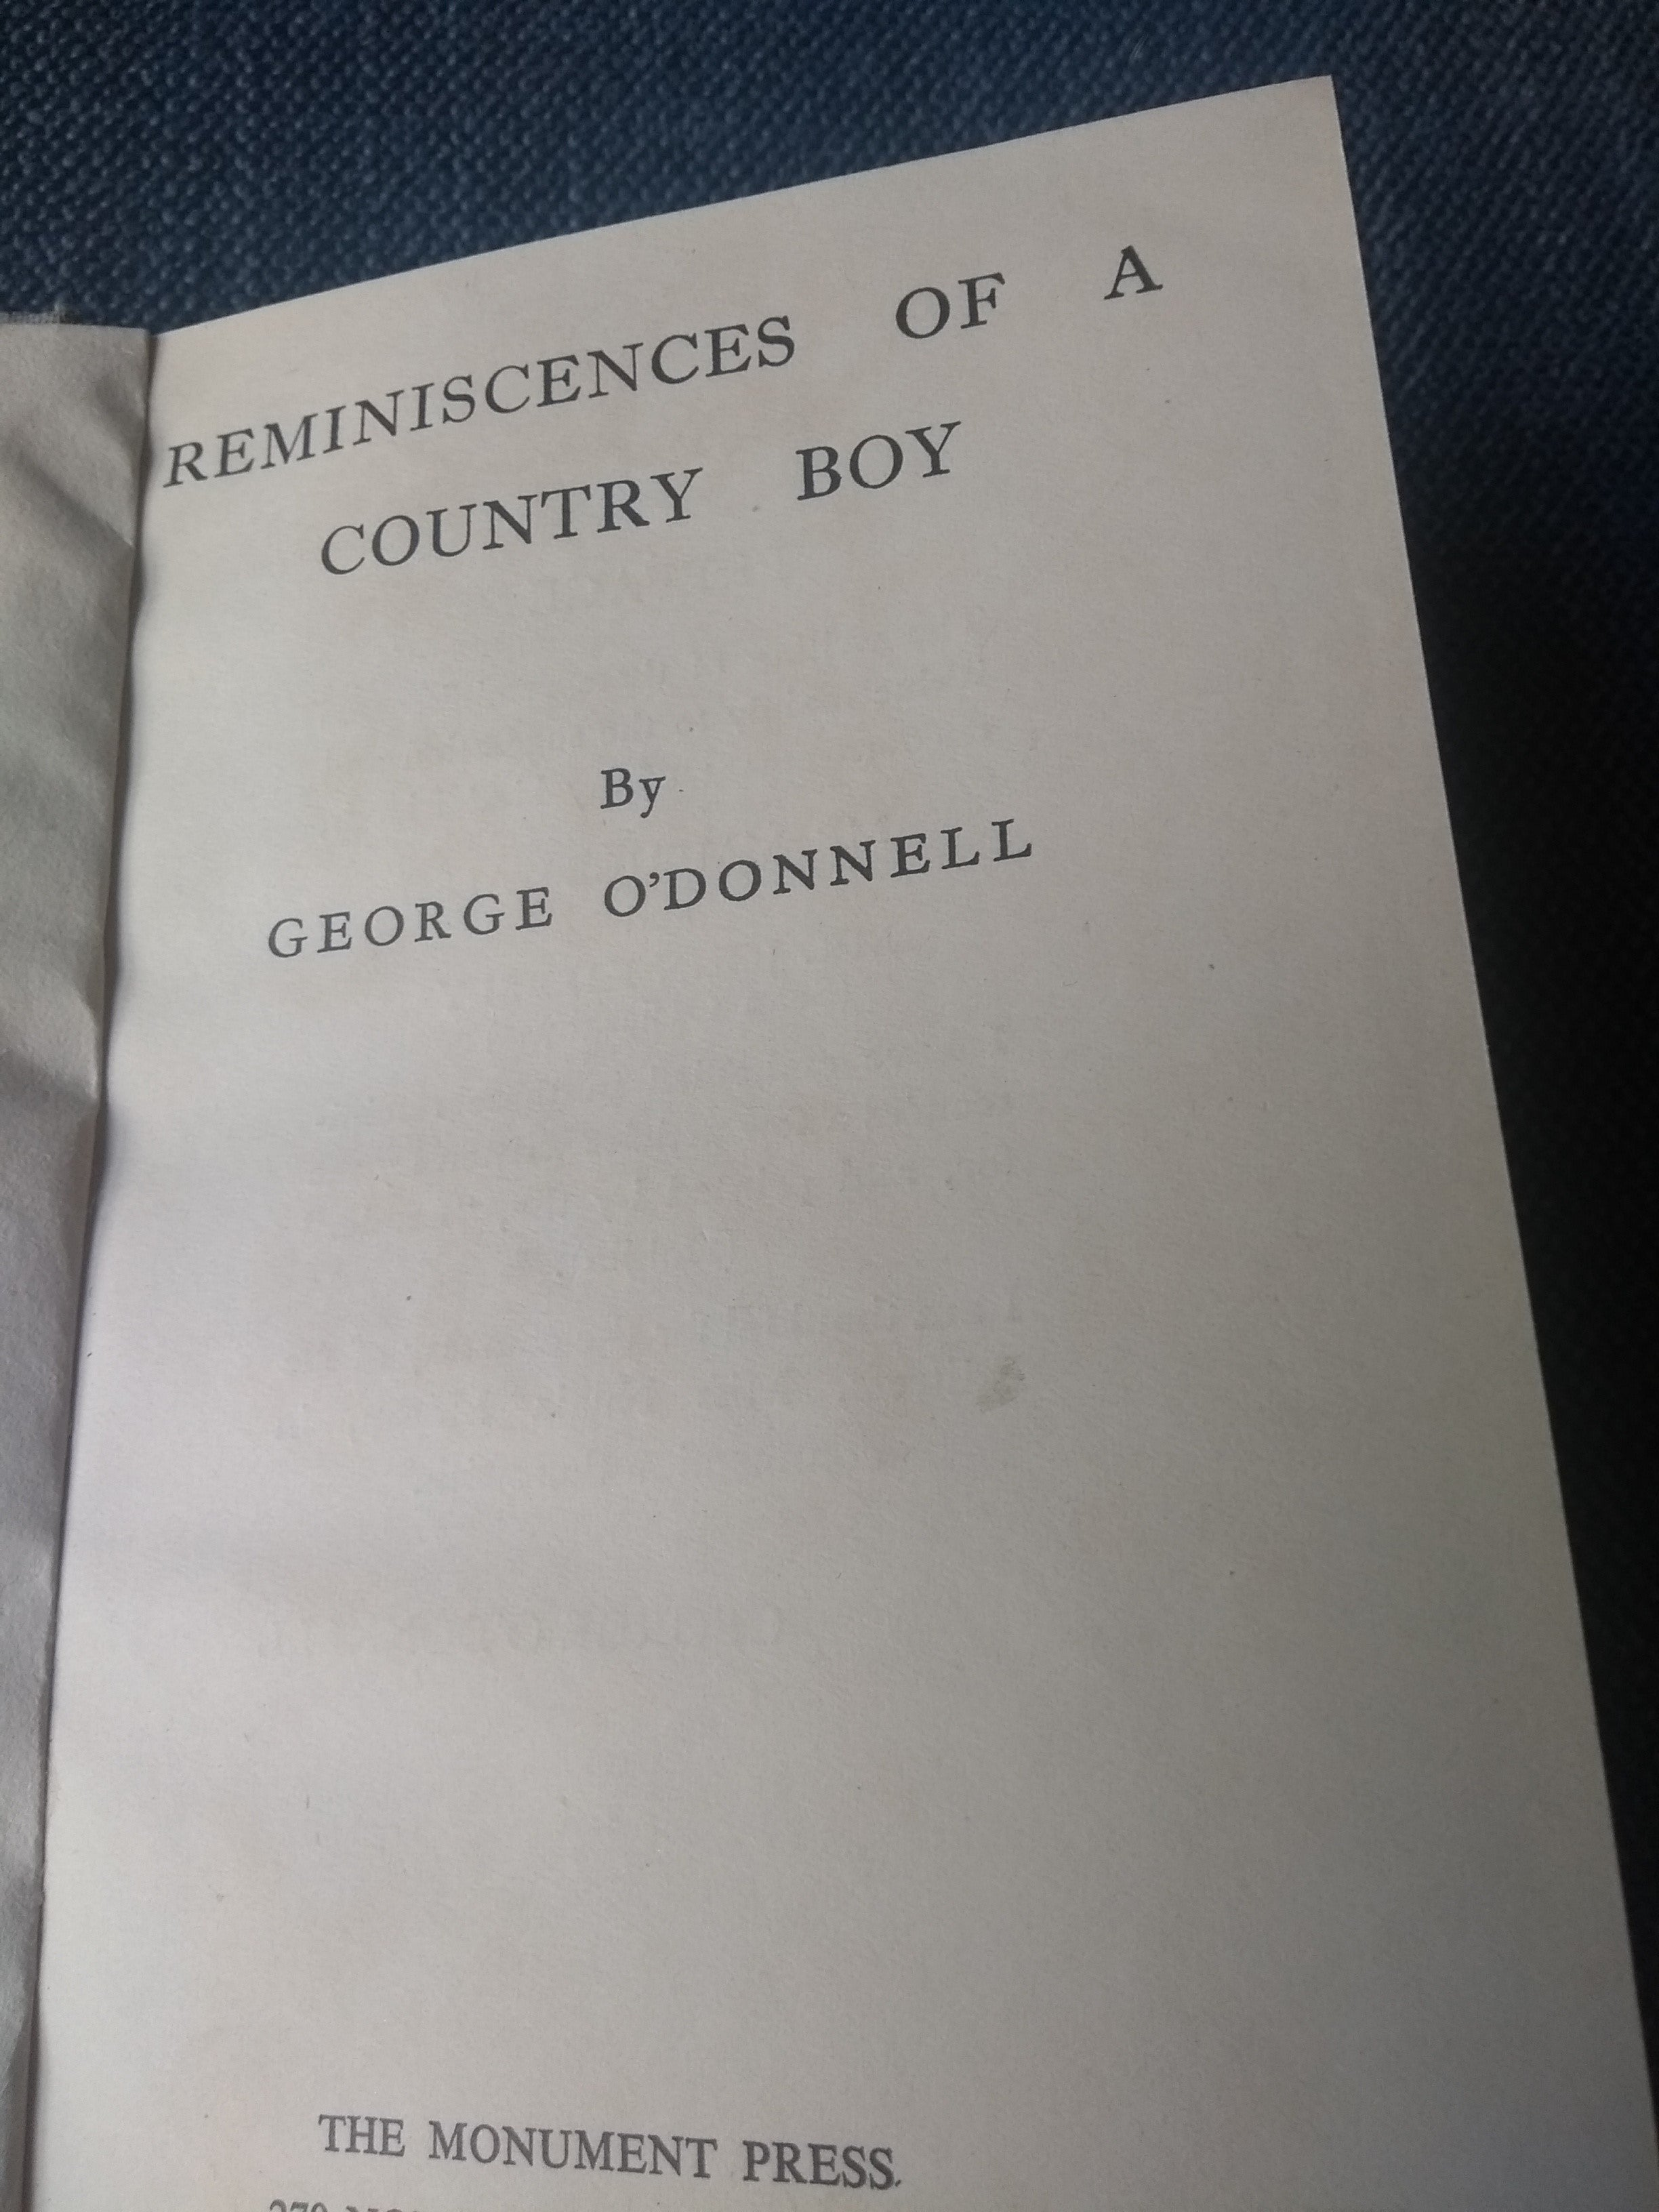 Reminiscences of a Country Boy, by George O' Donnell